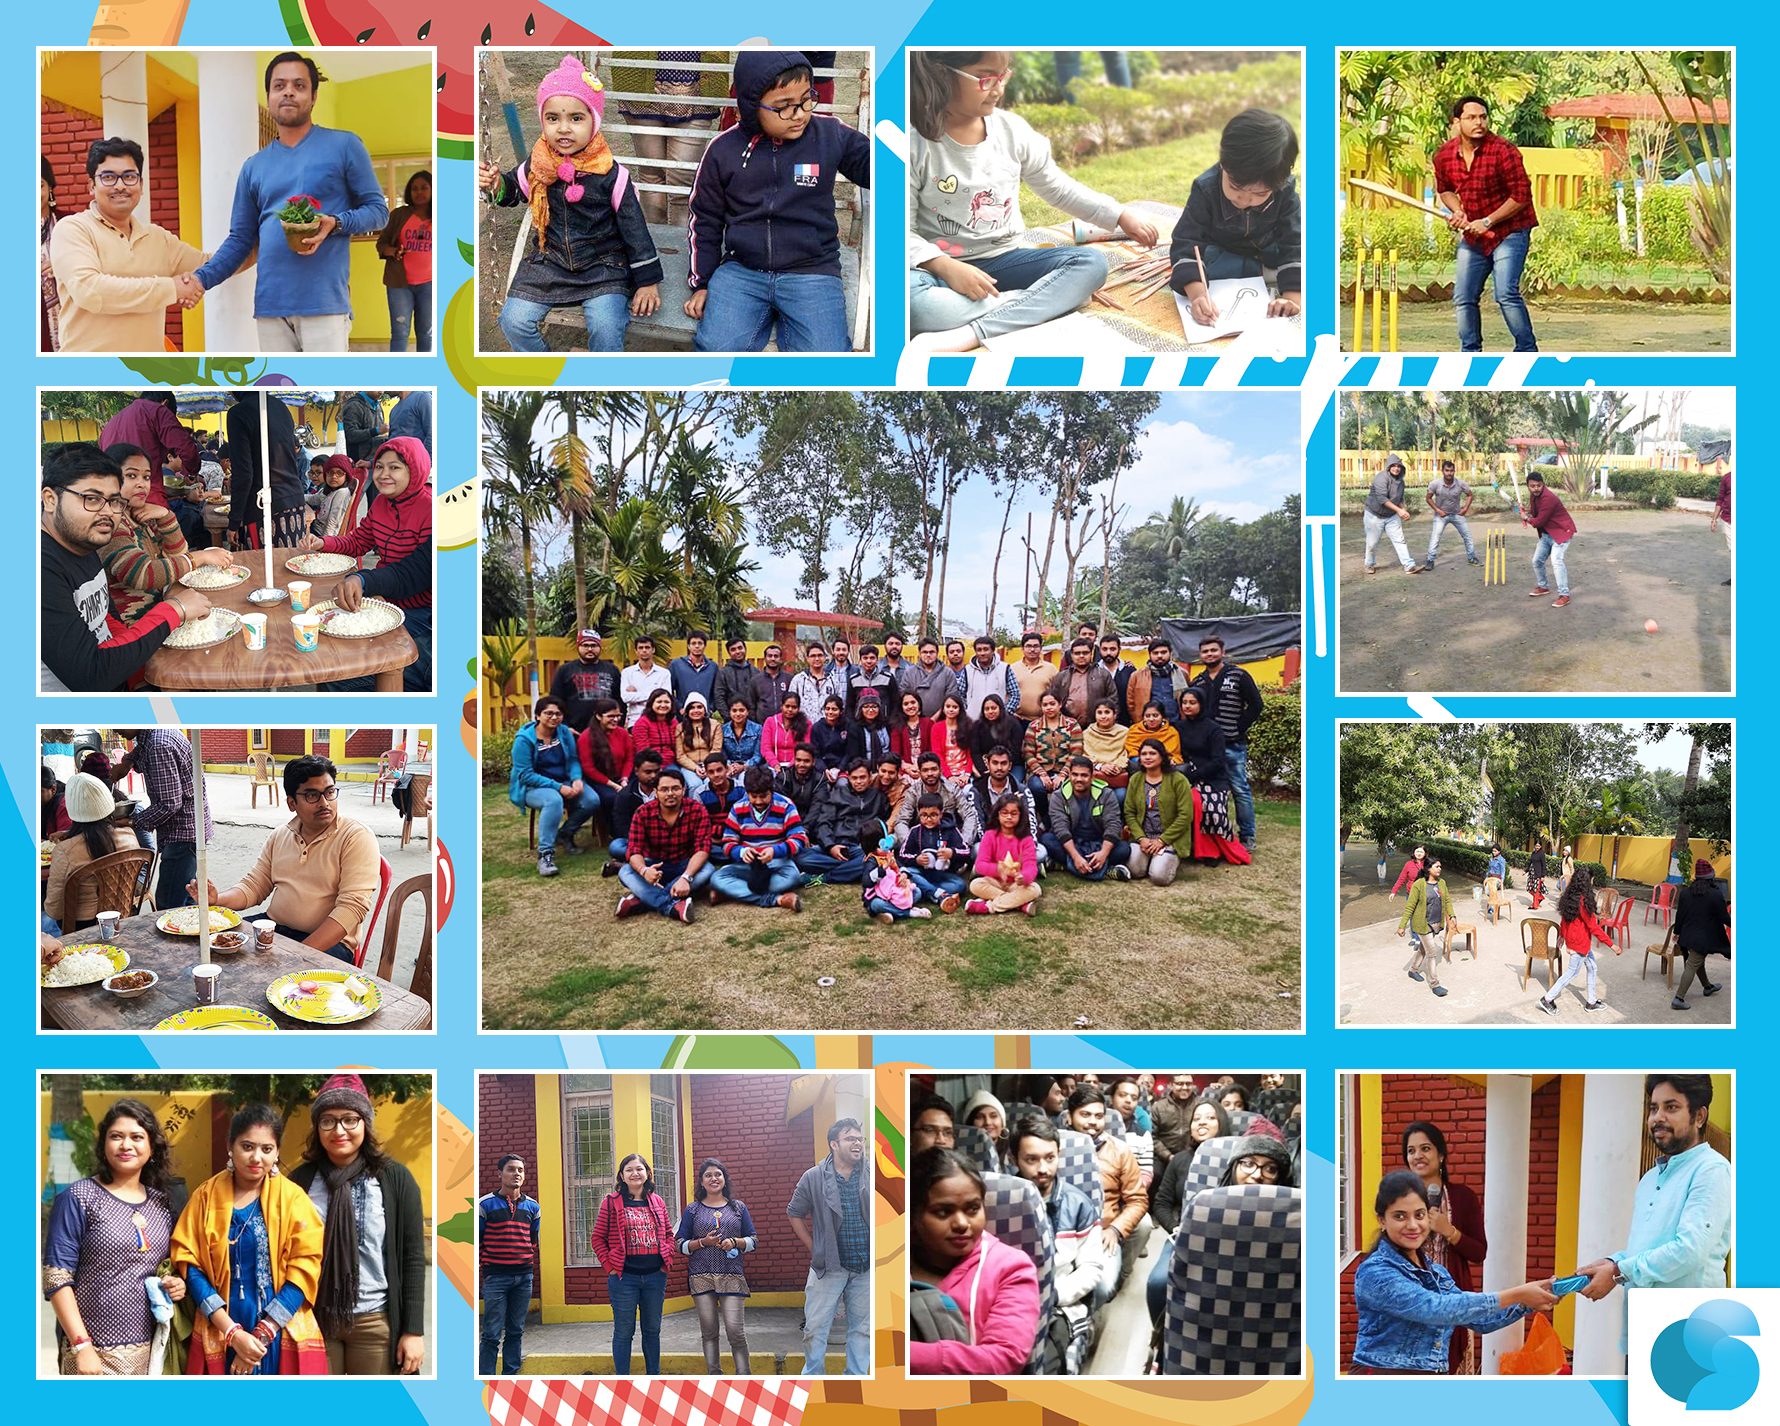 Annual Picnic 2020: Reconstructing Childhood with Extended Family